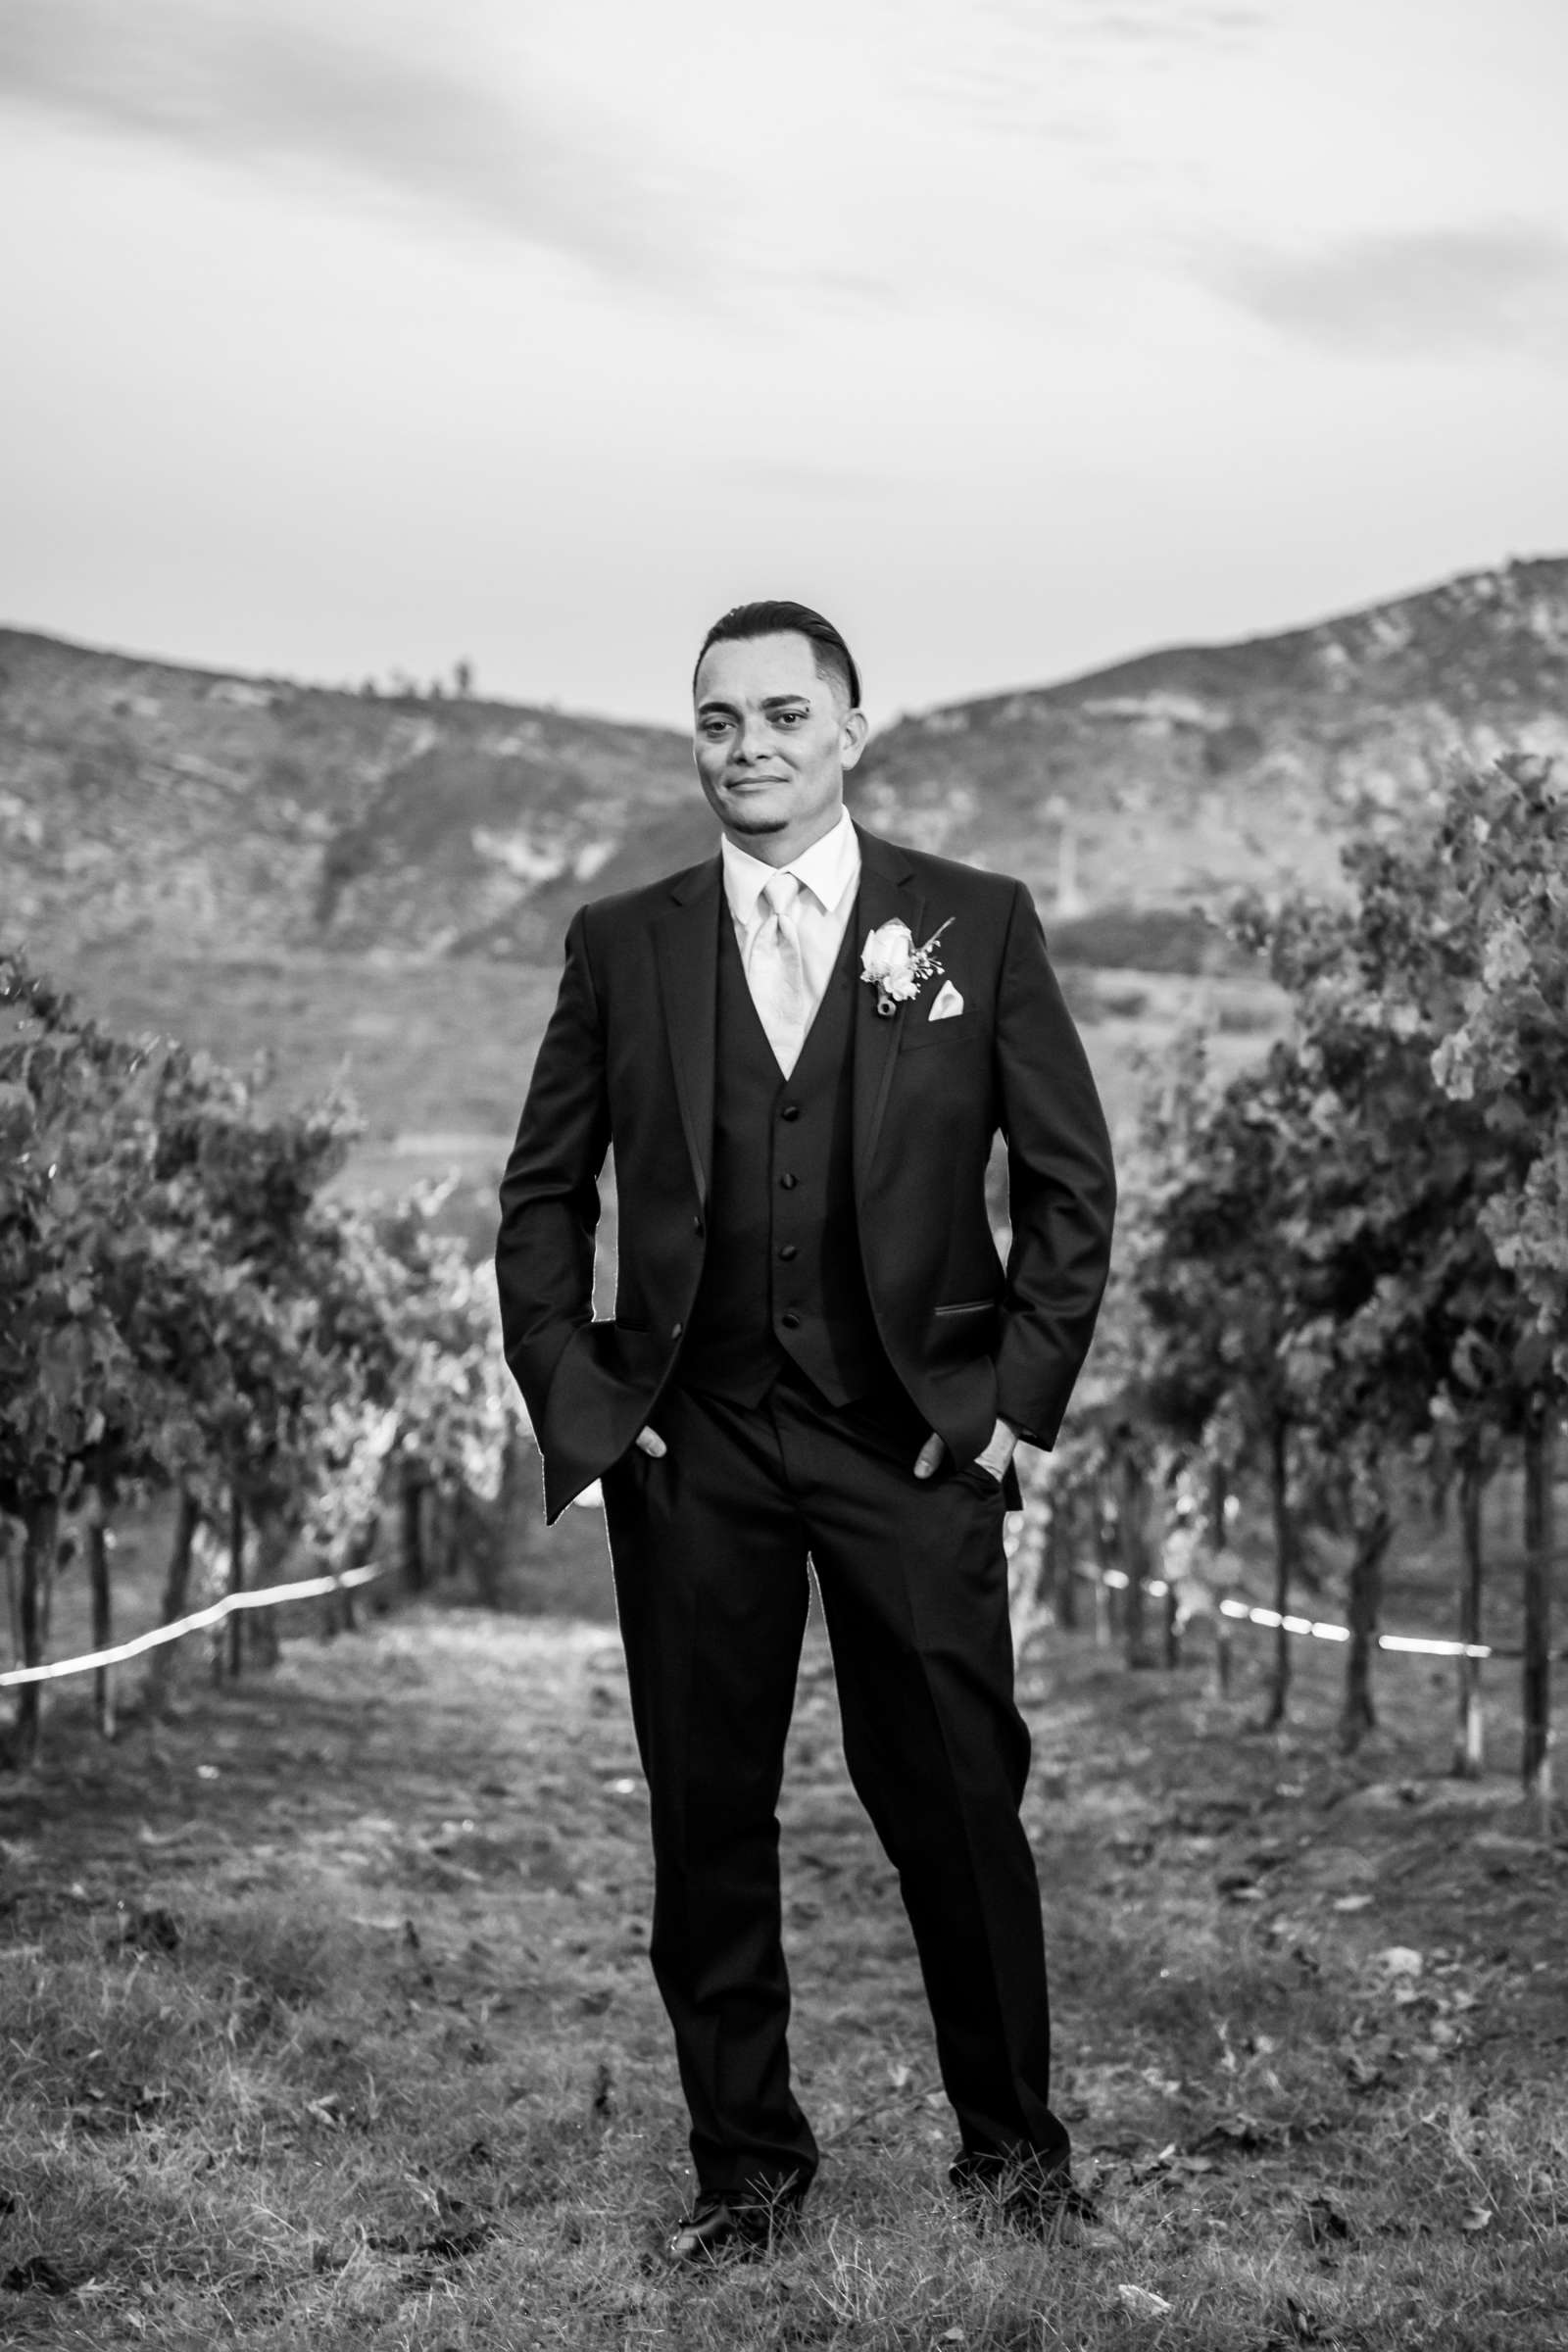 Orfila Vineyards Wedding, Tulasi and Richard Wedding Photo #6 by True Photography